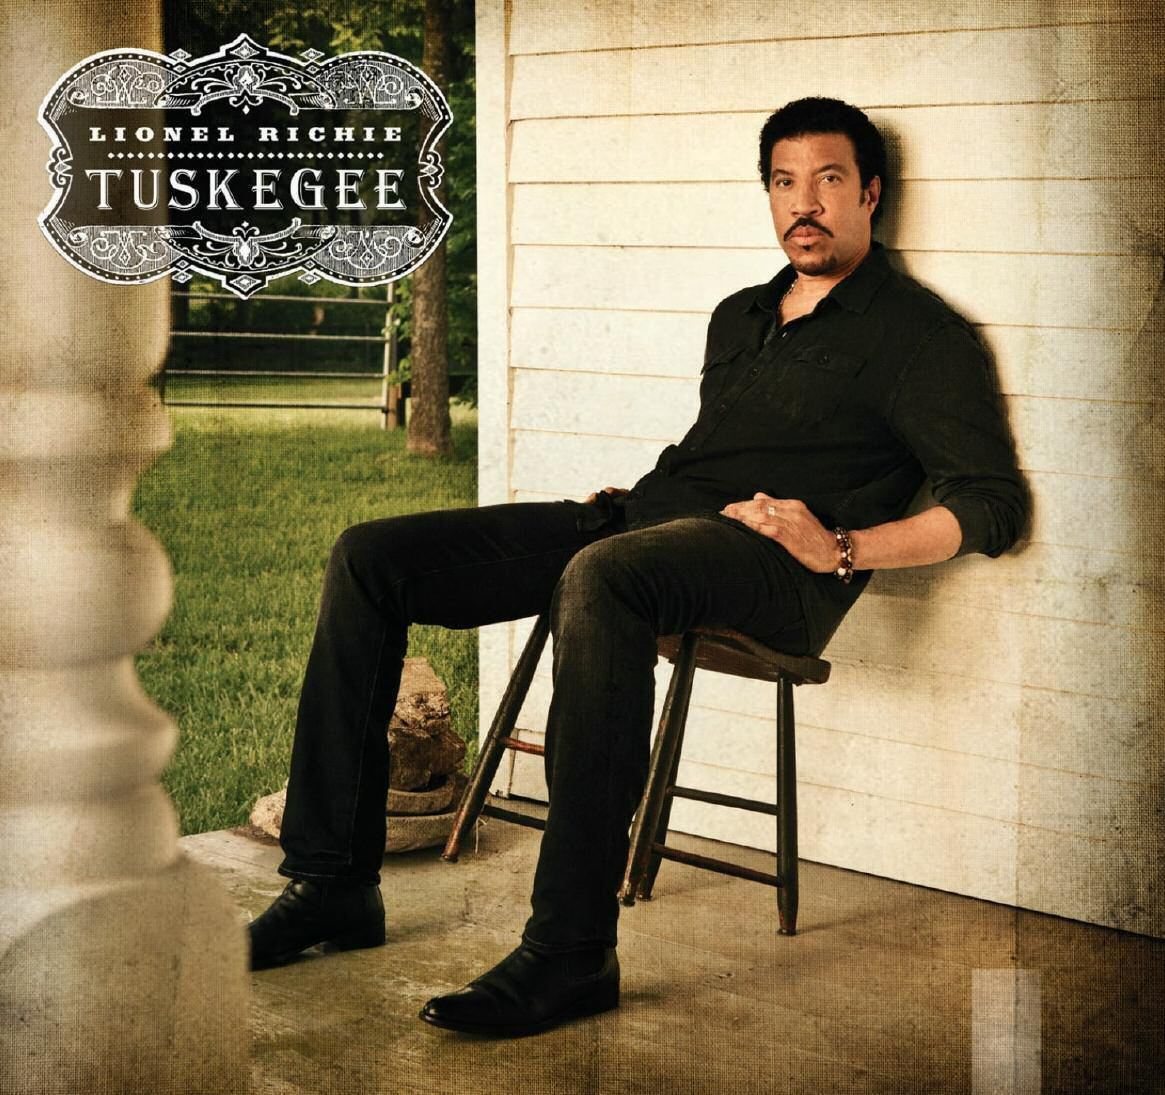 - TUSKEGEE - LIONEL RICHIE - CD -